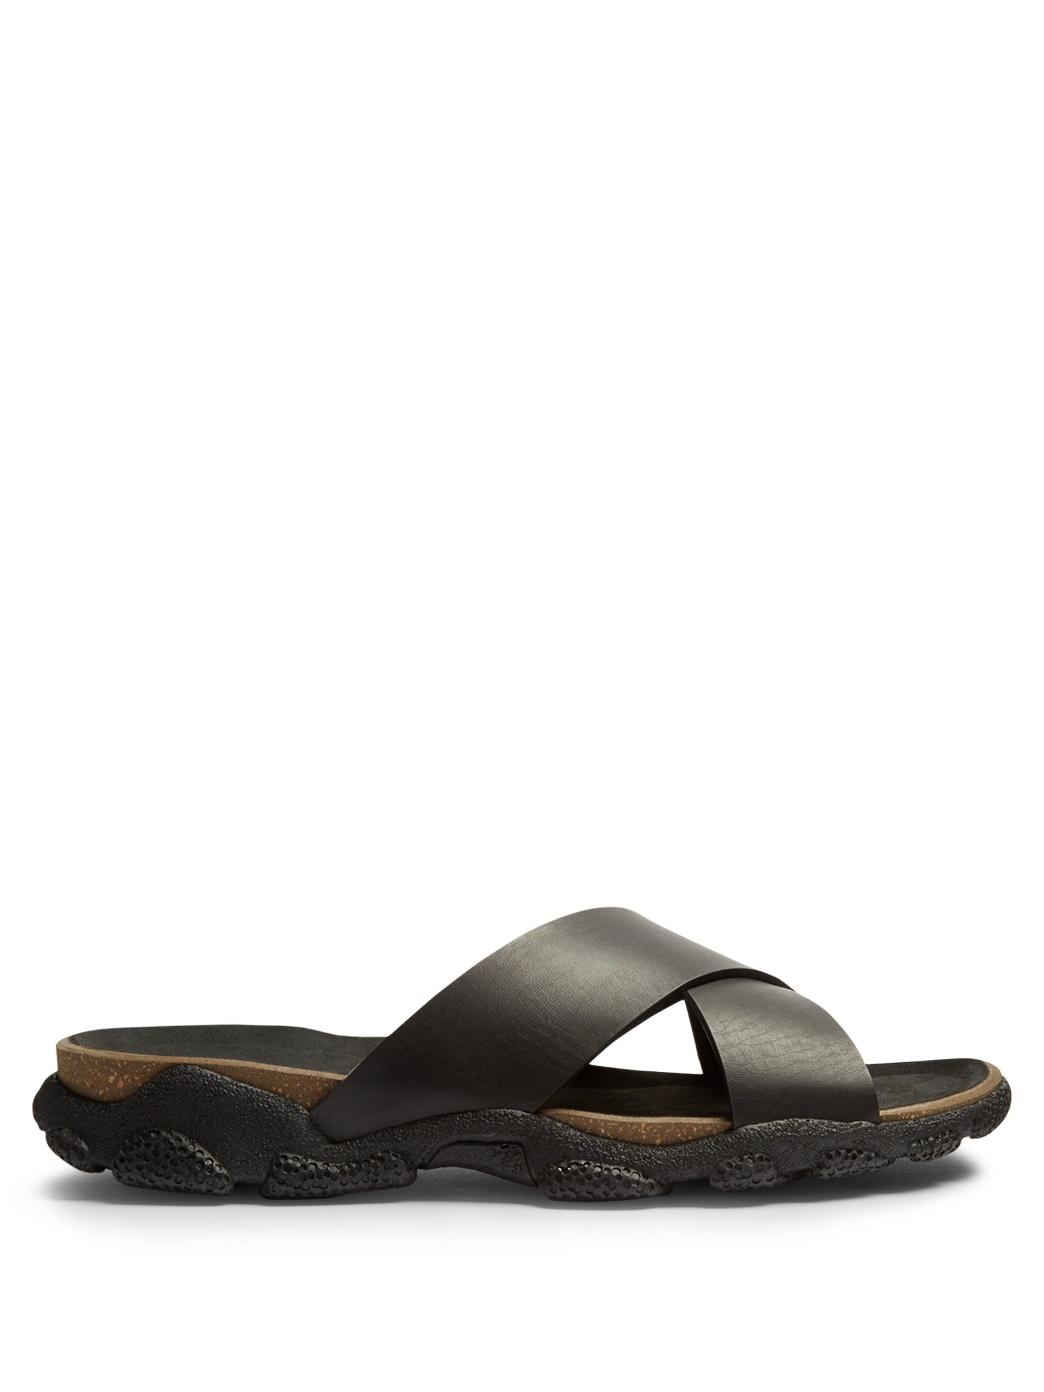 Stella McCartney criss-cross slide sandals in vegan leather, cork, and rubber